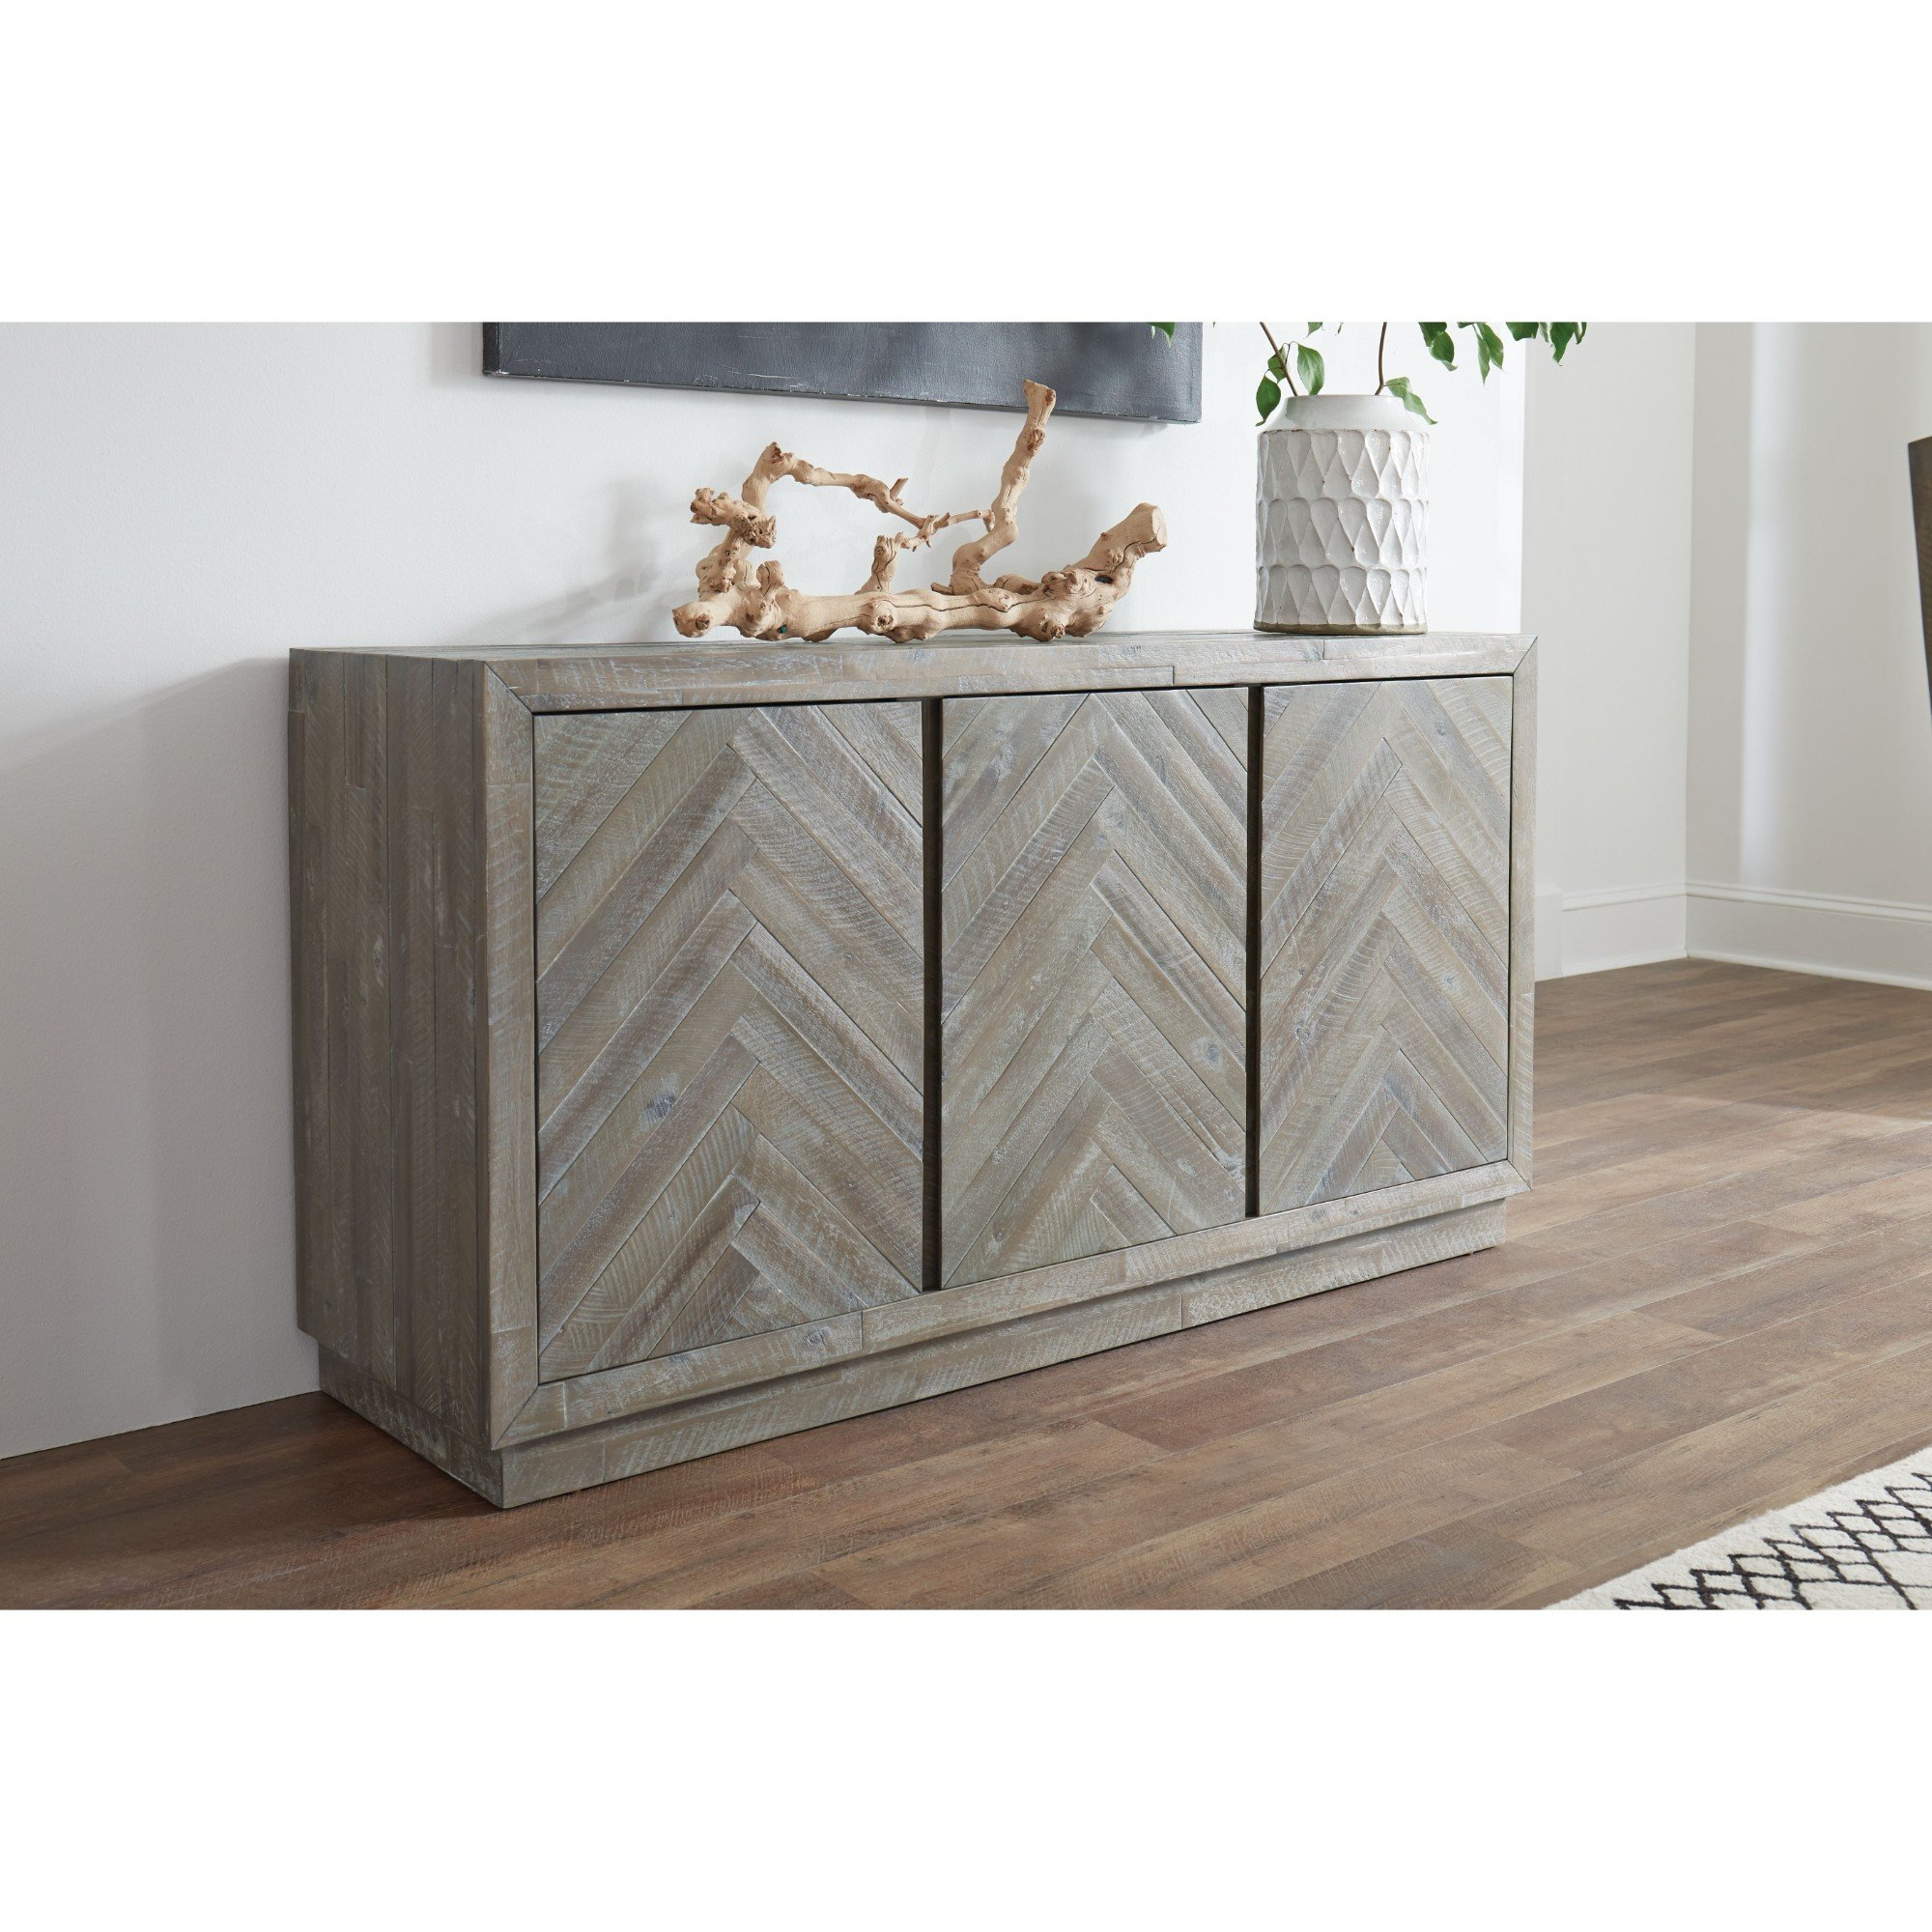 Wayfair Pertaining To Arminta Wood Sideboards (View 18 of 20)